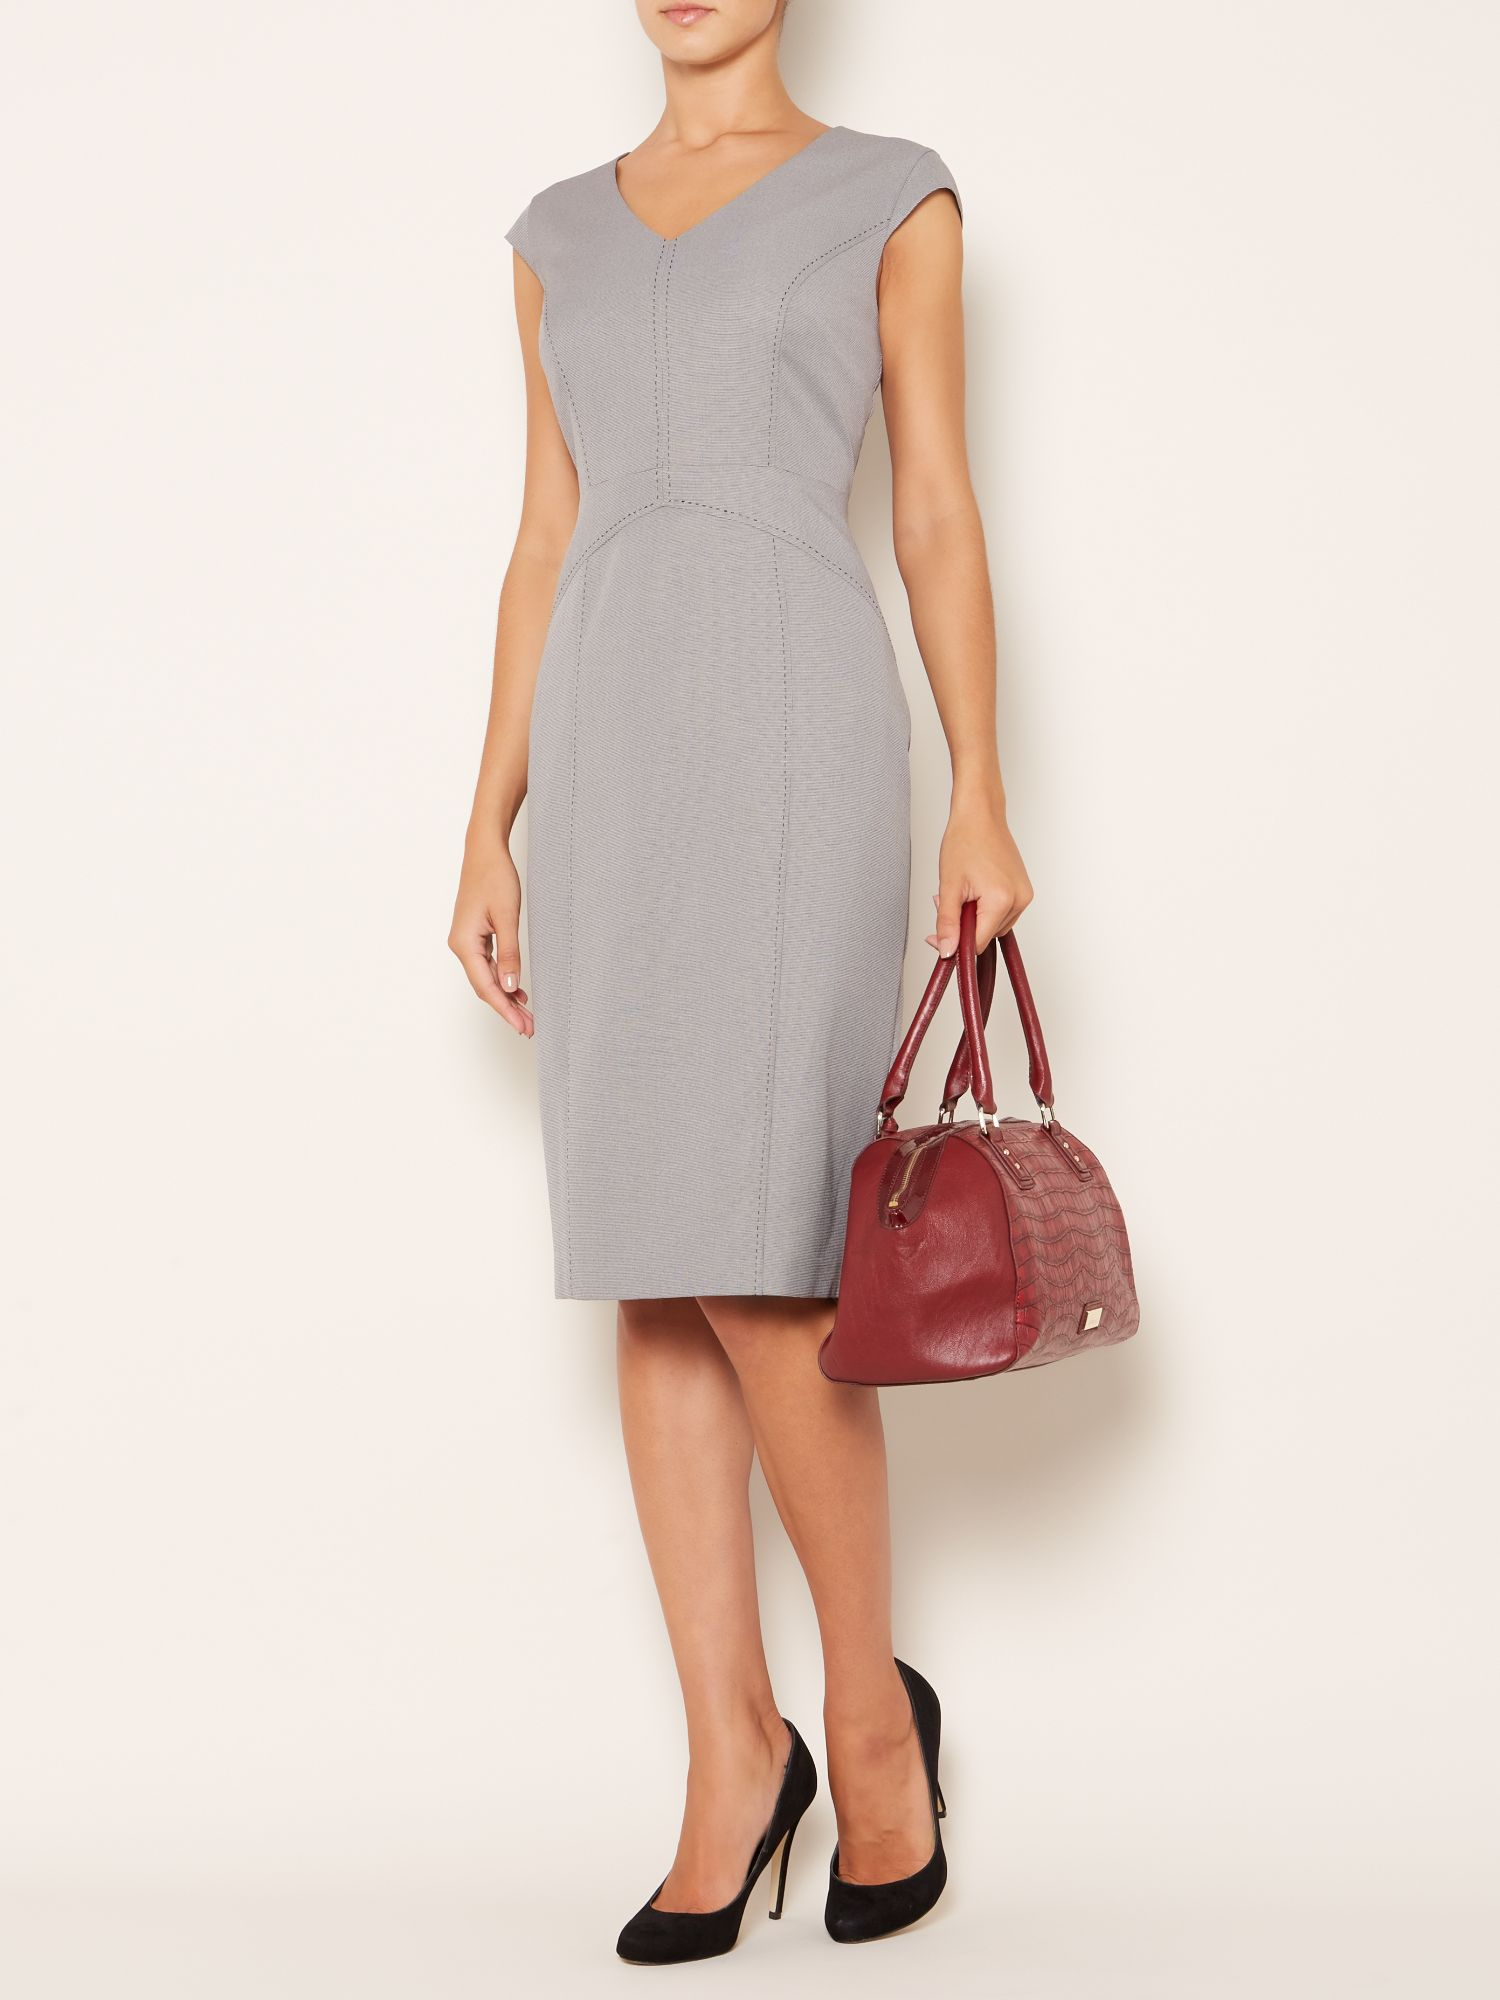 Andi Cap Sleeve Shift Dress